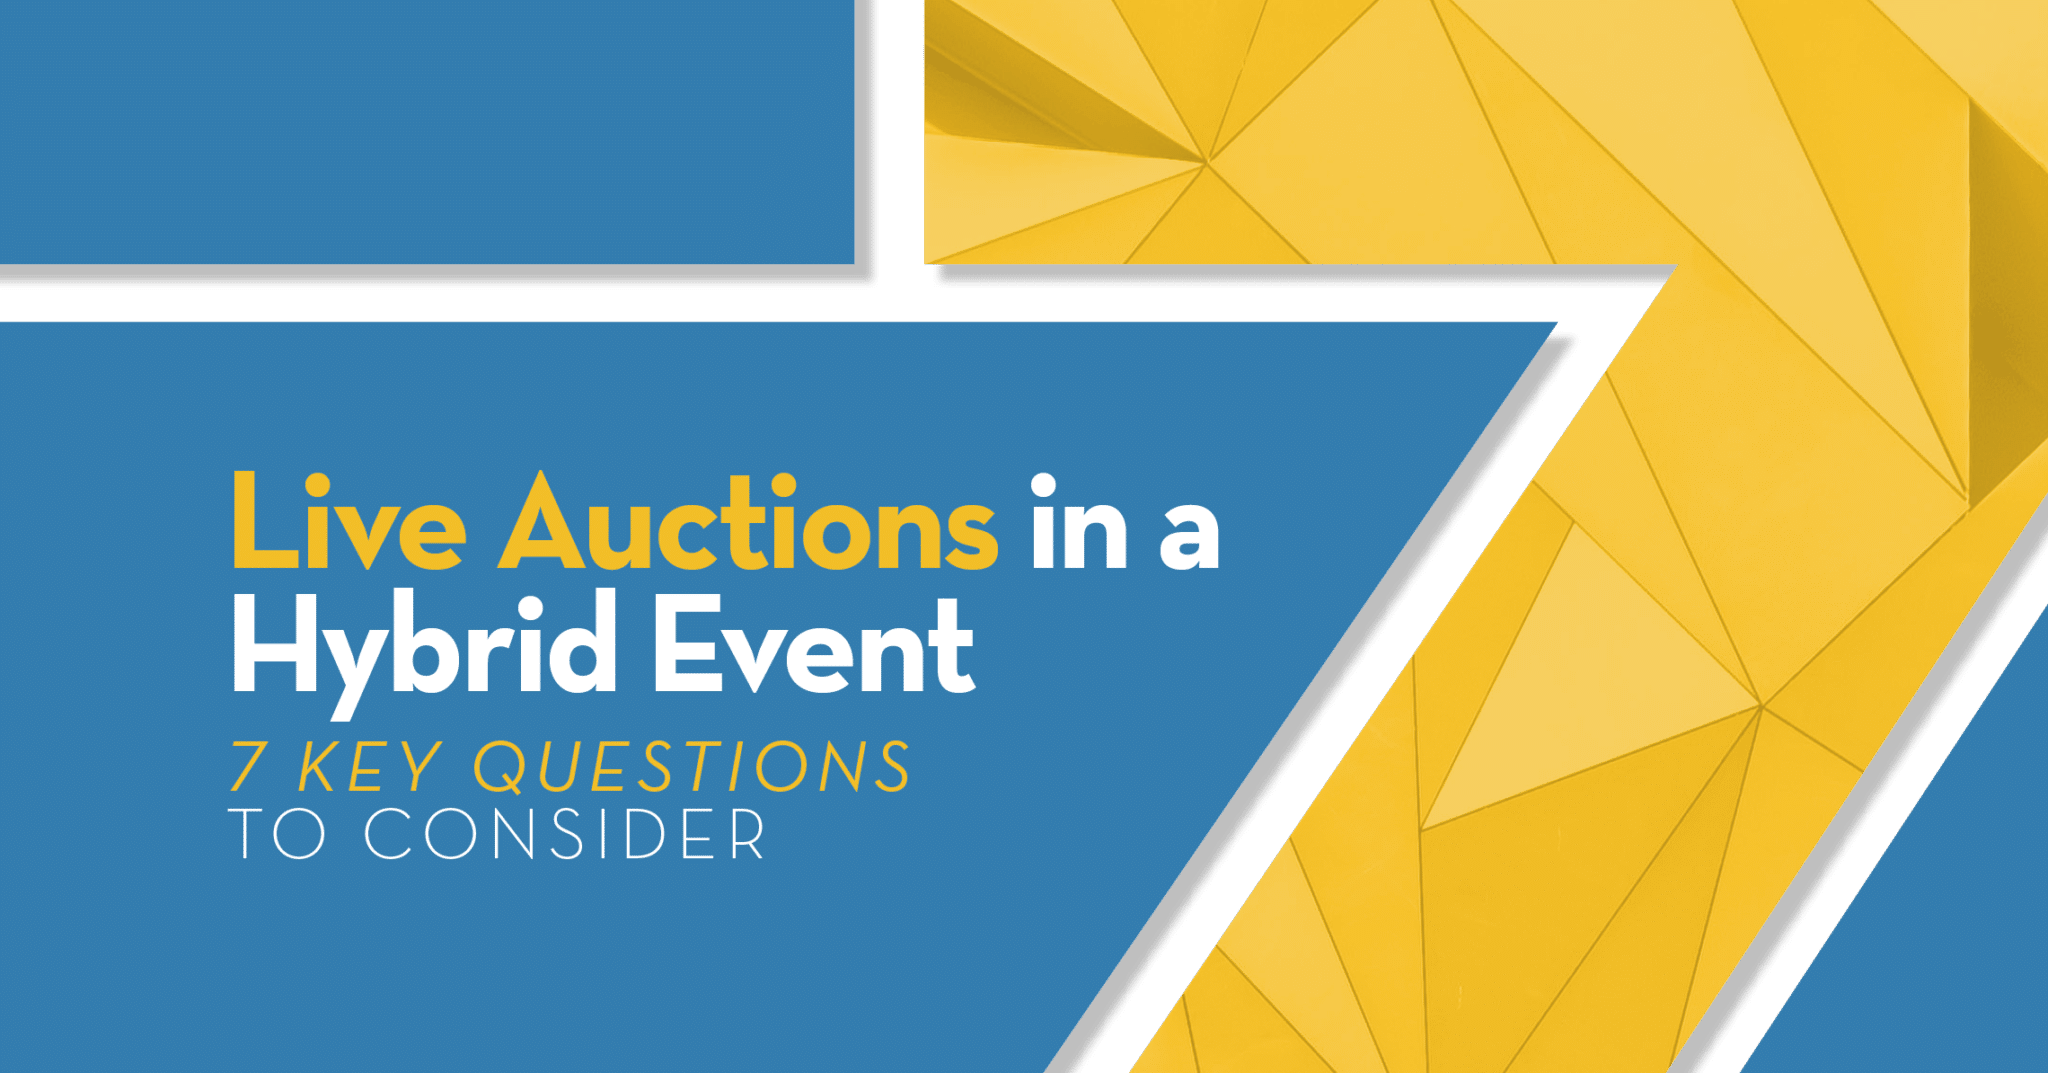 Live Auctions in a Hybrid Event - 7 Key Questions to Consider